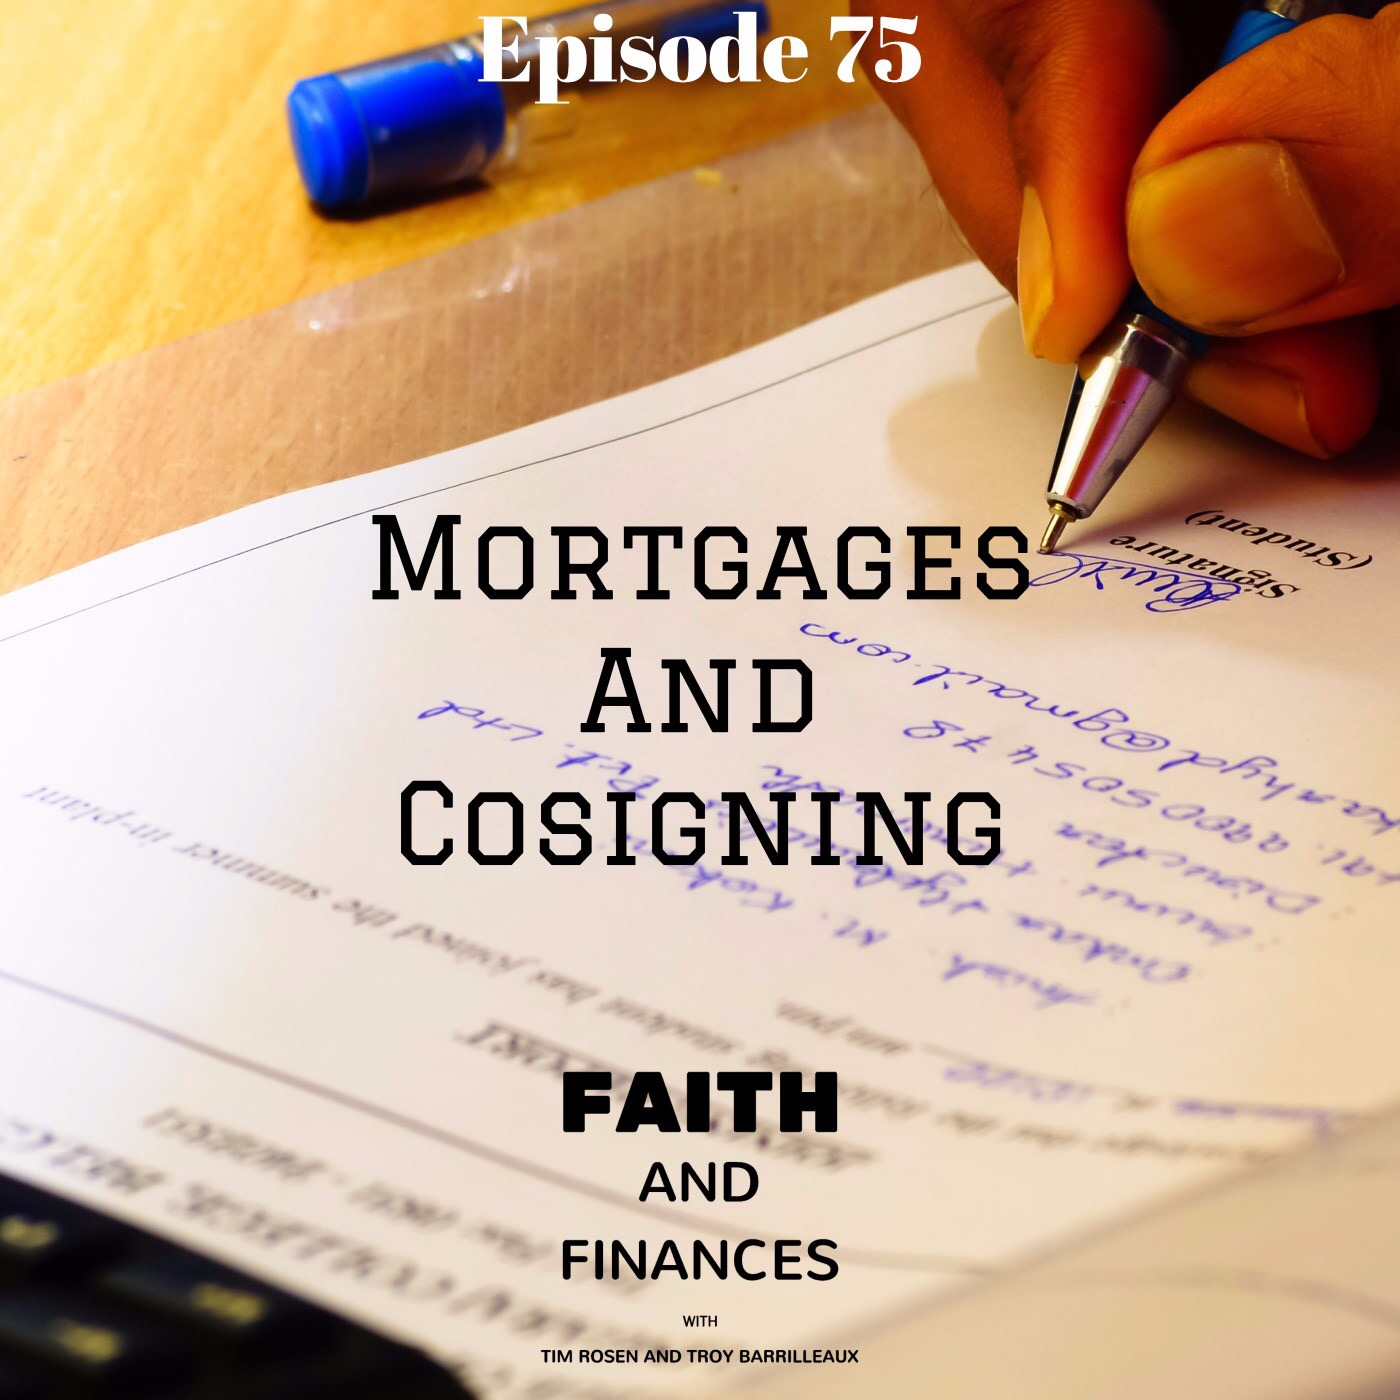 075: Mortgages And Cosigning